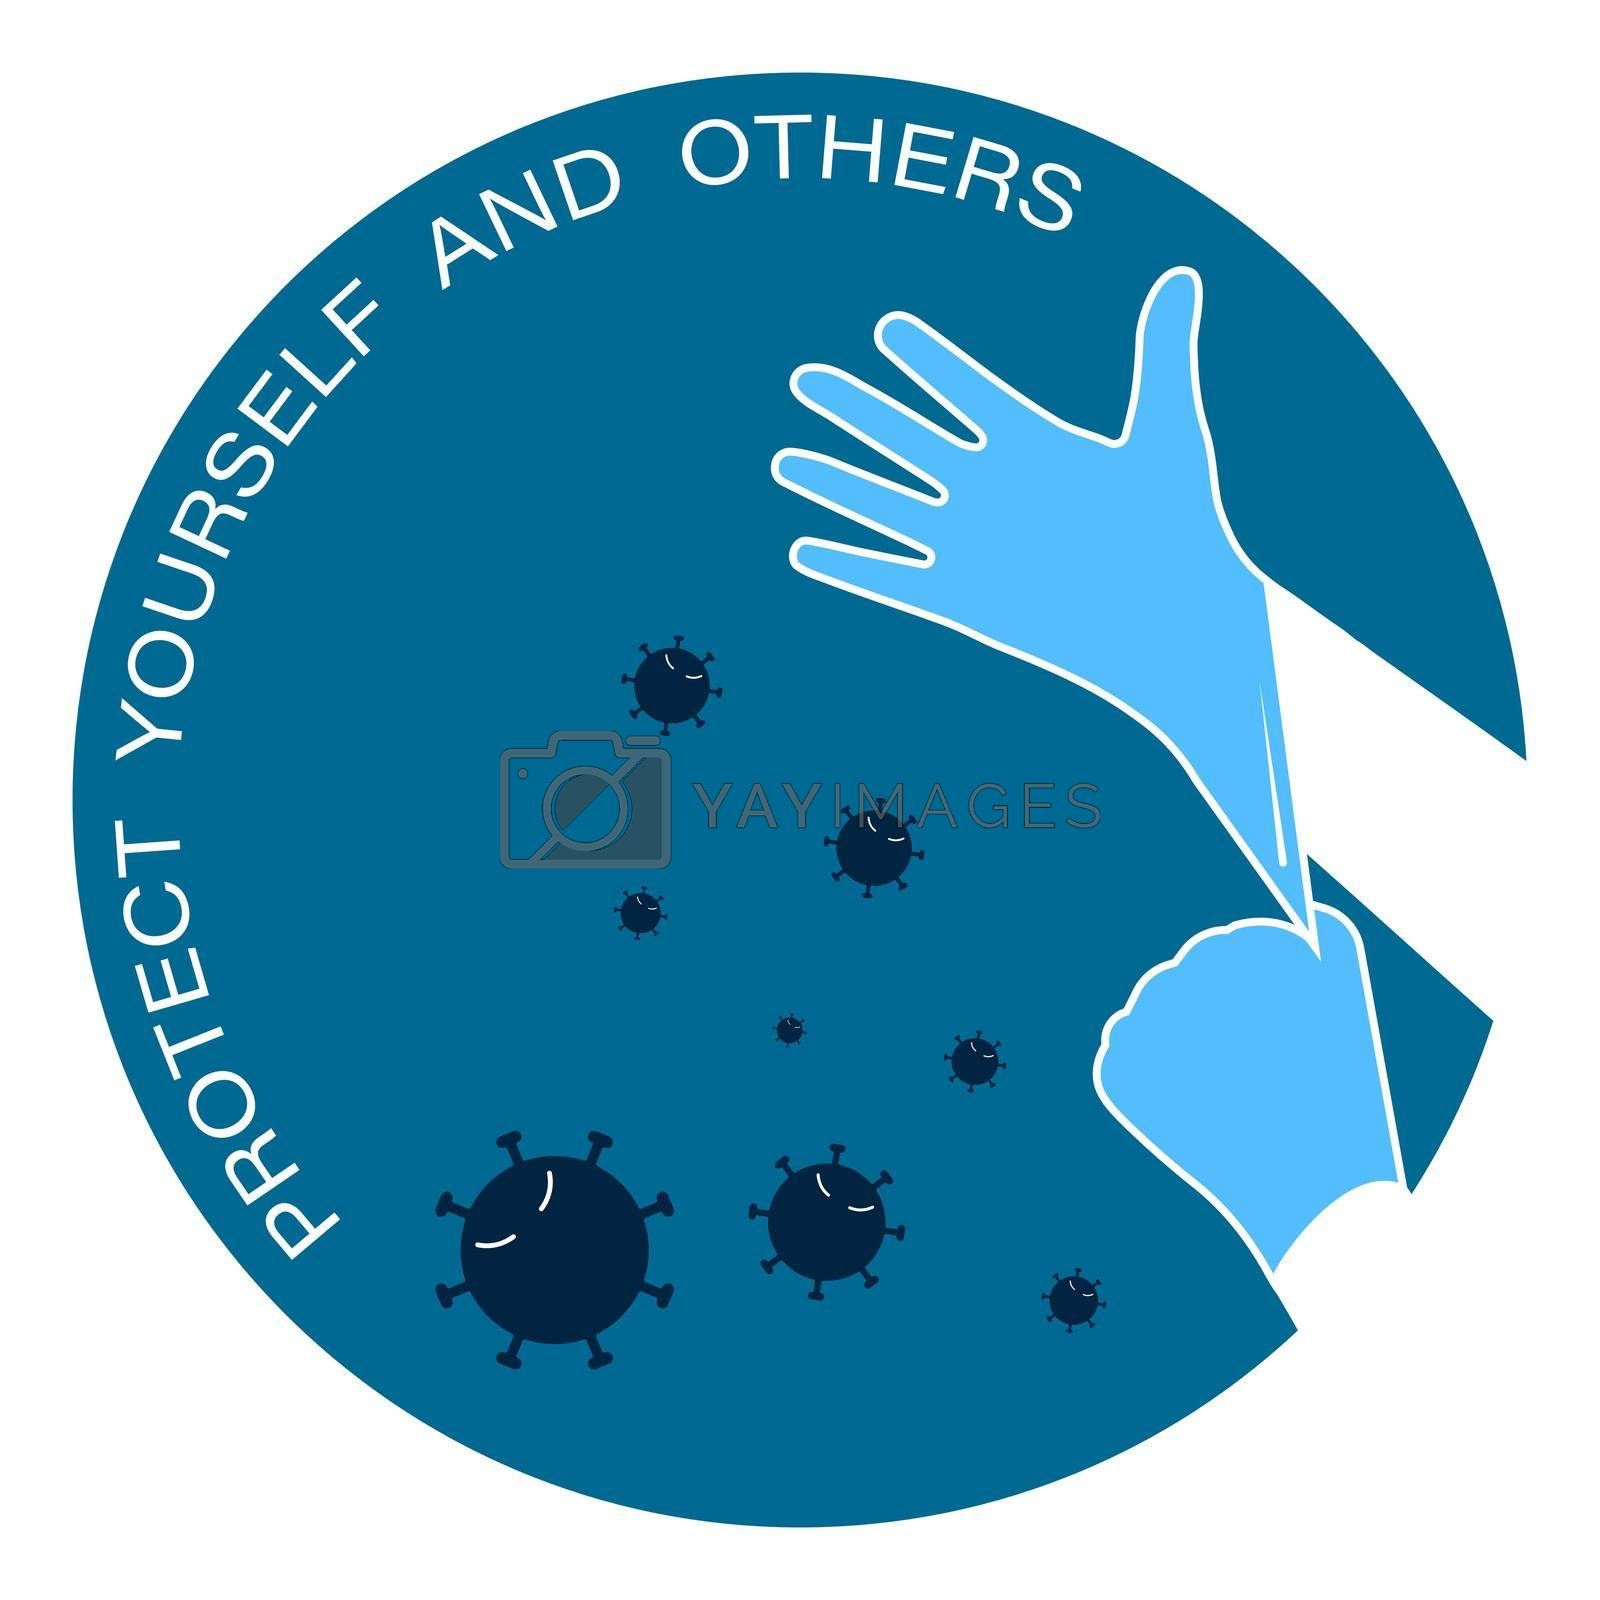 colored icon, logo. Rubber gloves are worn on the hands to protect against viruses and bacteria. Protecting yourself and others. Isolated vector